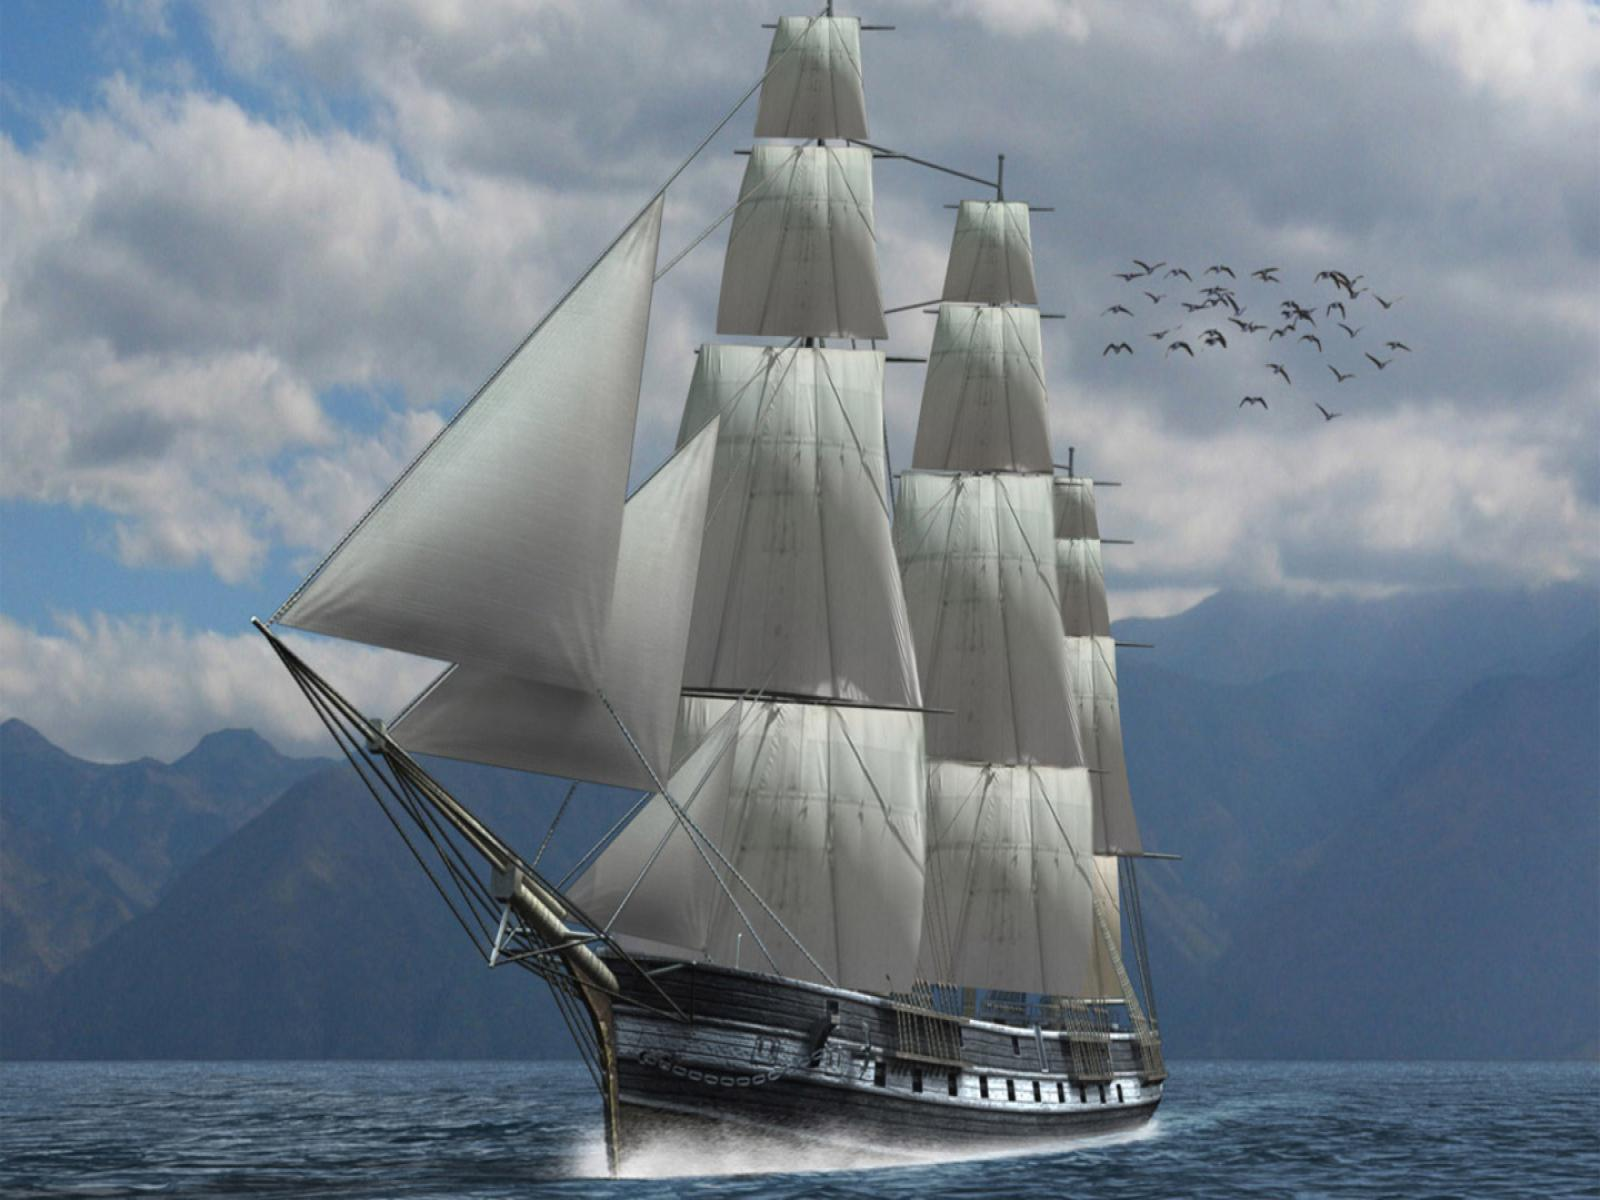 HD Sailing Ship 1440x900 - Download FREE Widescreen HD Sailing Ship